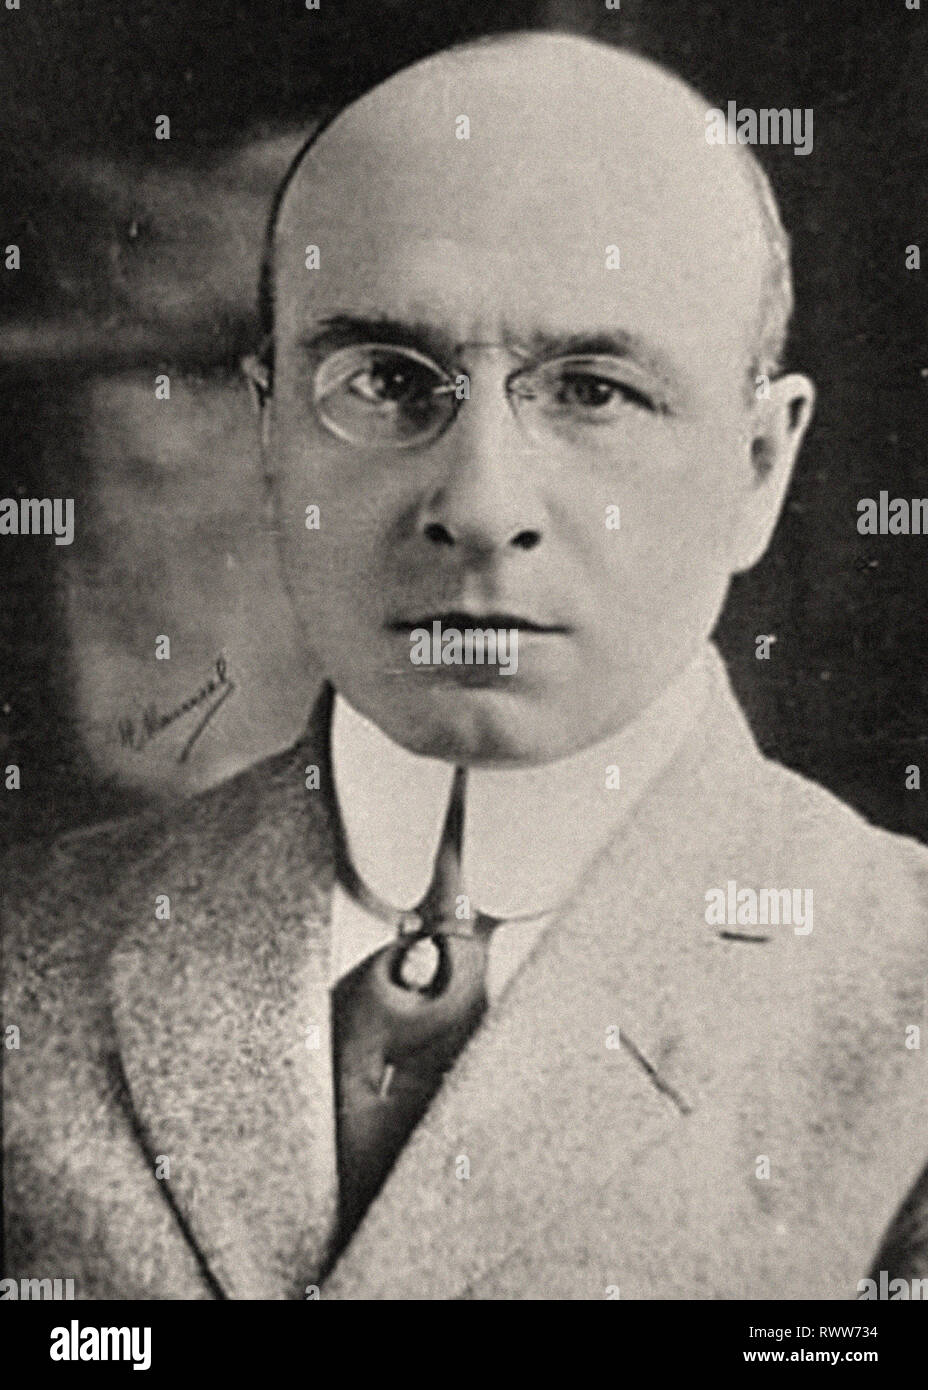 Photographic portrait of Carell, Alexis - Stock Image